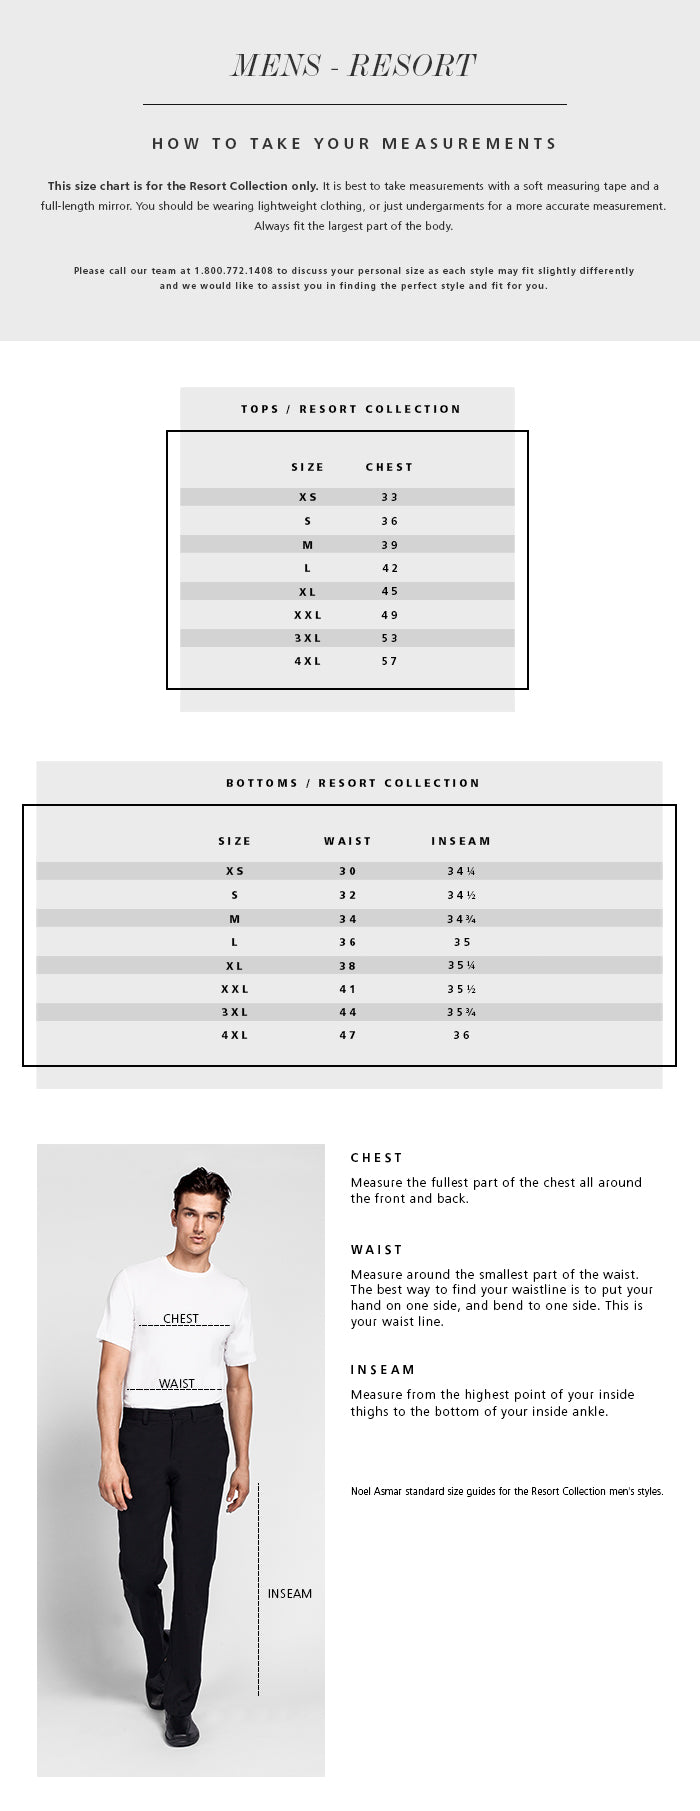 Men's Resort Collection Size Chart